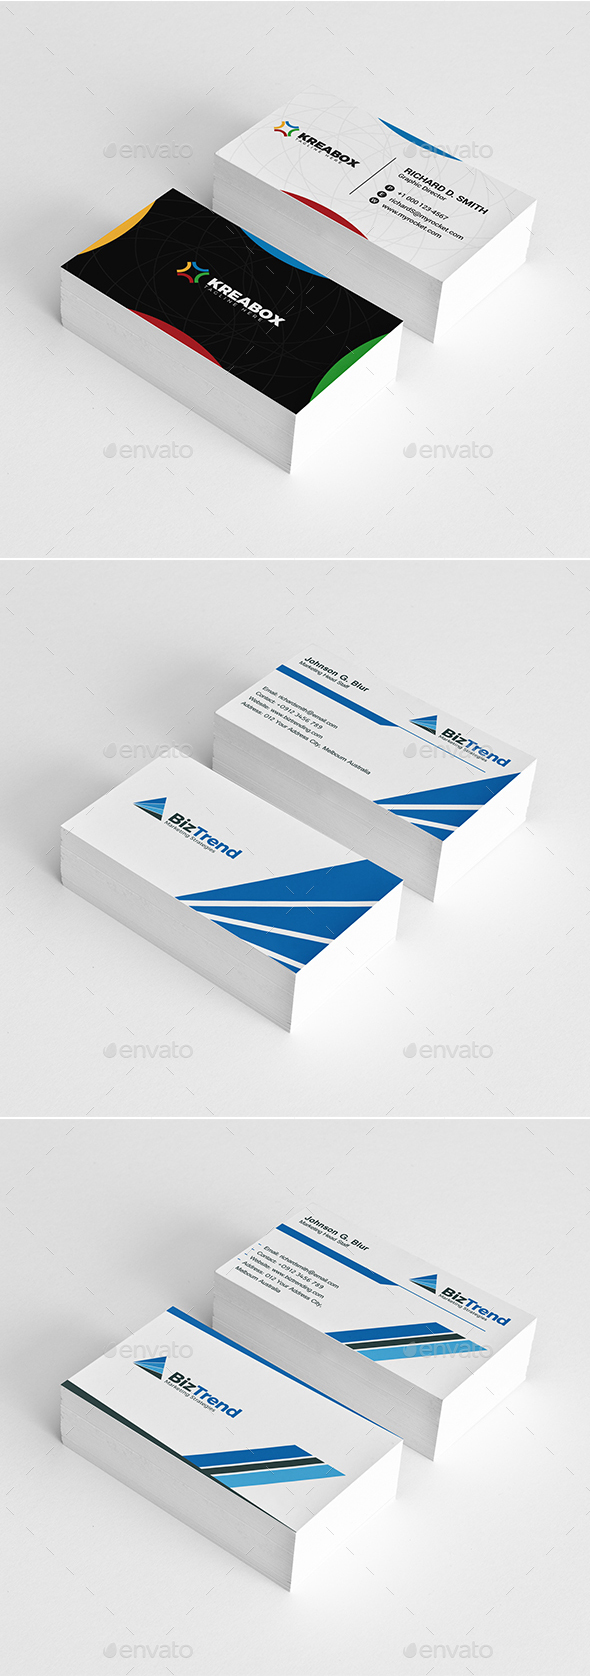 3 In 1 Business Card Bundle - Business Cards Print Templates